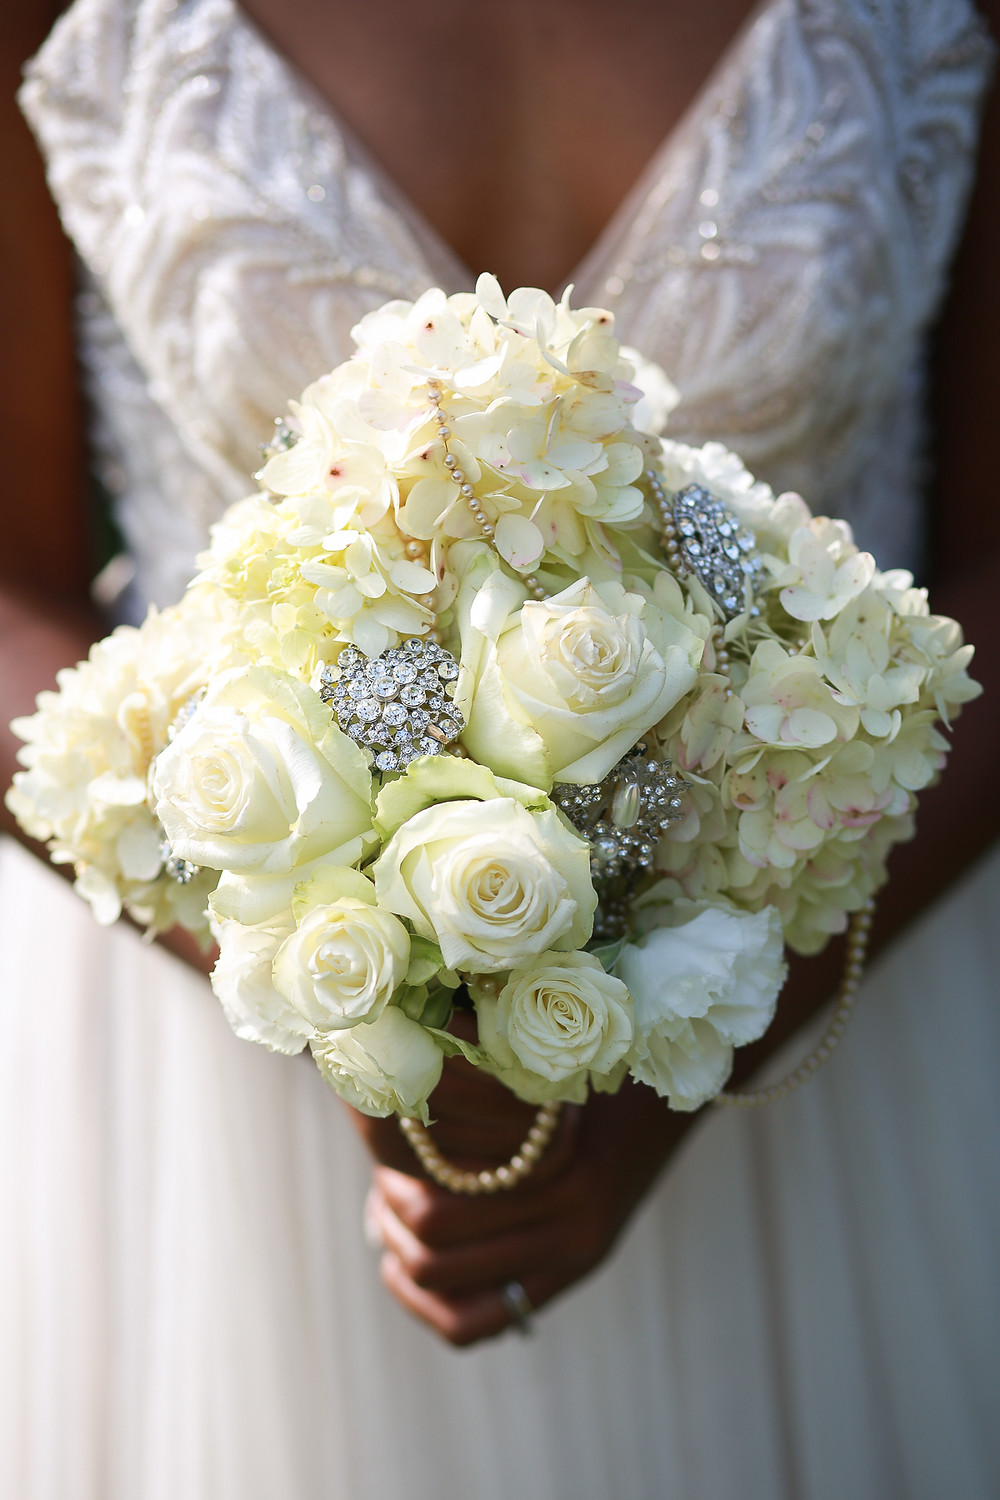 The bride holding a bouquet out in front of her. The bouquet is made up of white flowers and is adorned with brouches and beads.